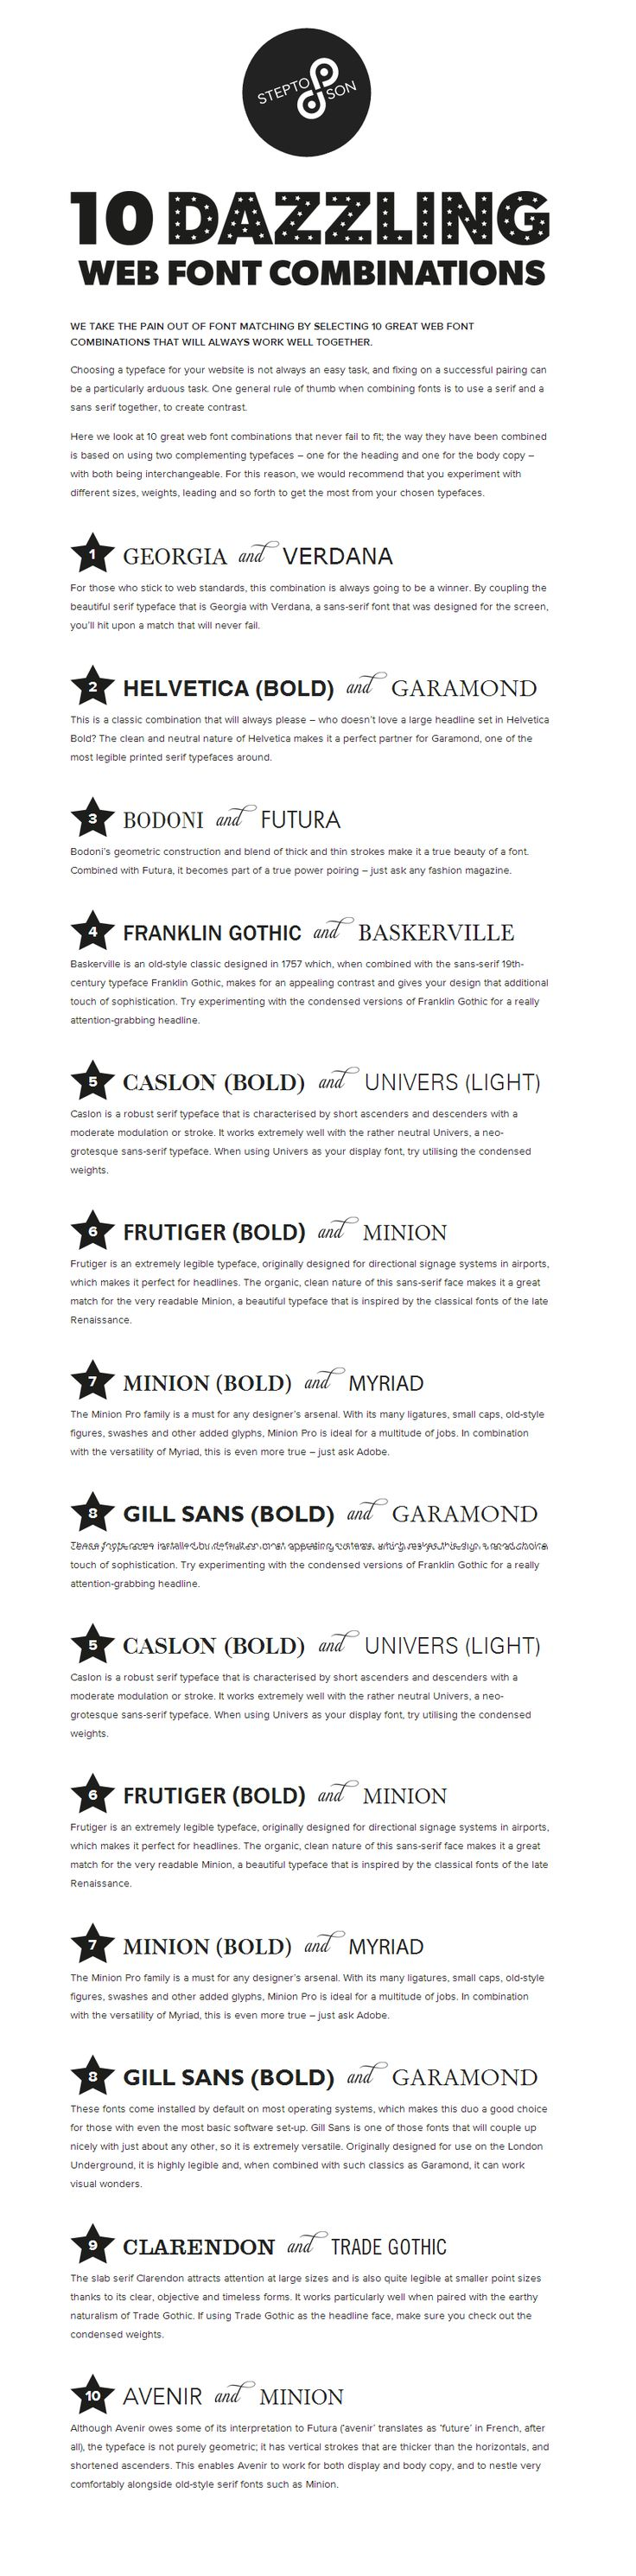 resume Best Font For Resumes best 20 resume fonts ideas on pinterest create a cv 10 great web font combinations